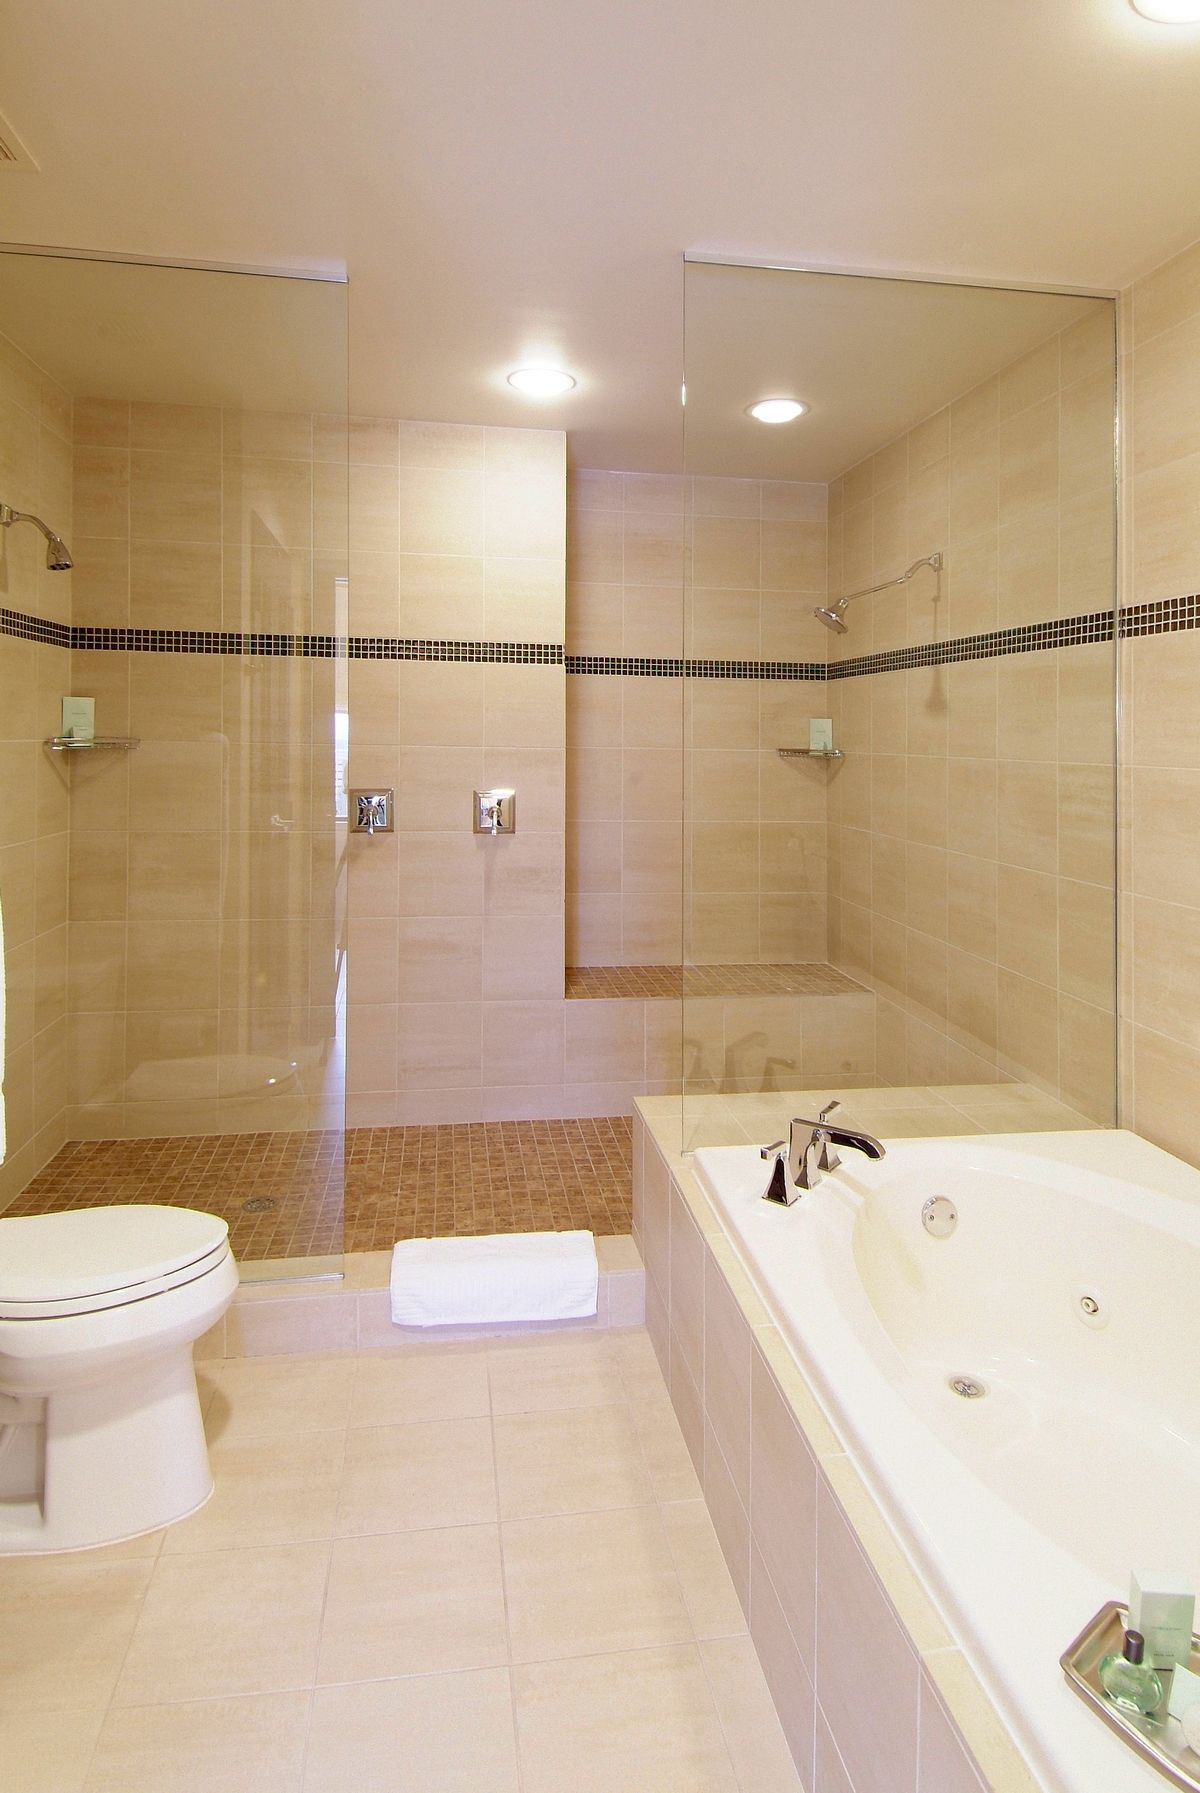 The Bathroom In Colcord Hotel S Presidential Suite Which Is Located In Downtown Oklahoma City Oklahoma City Hotels Downtown Oklahoma City Hotel